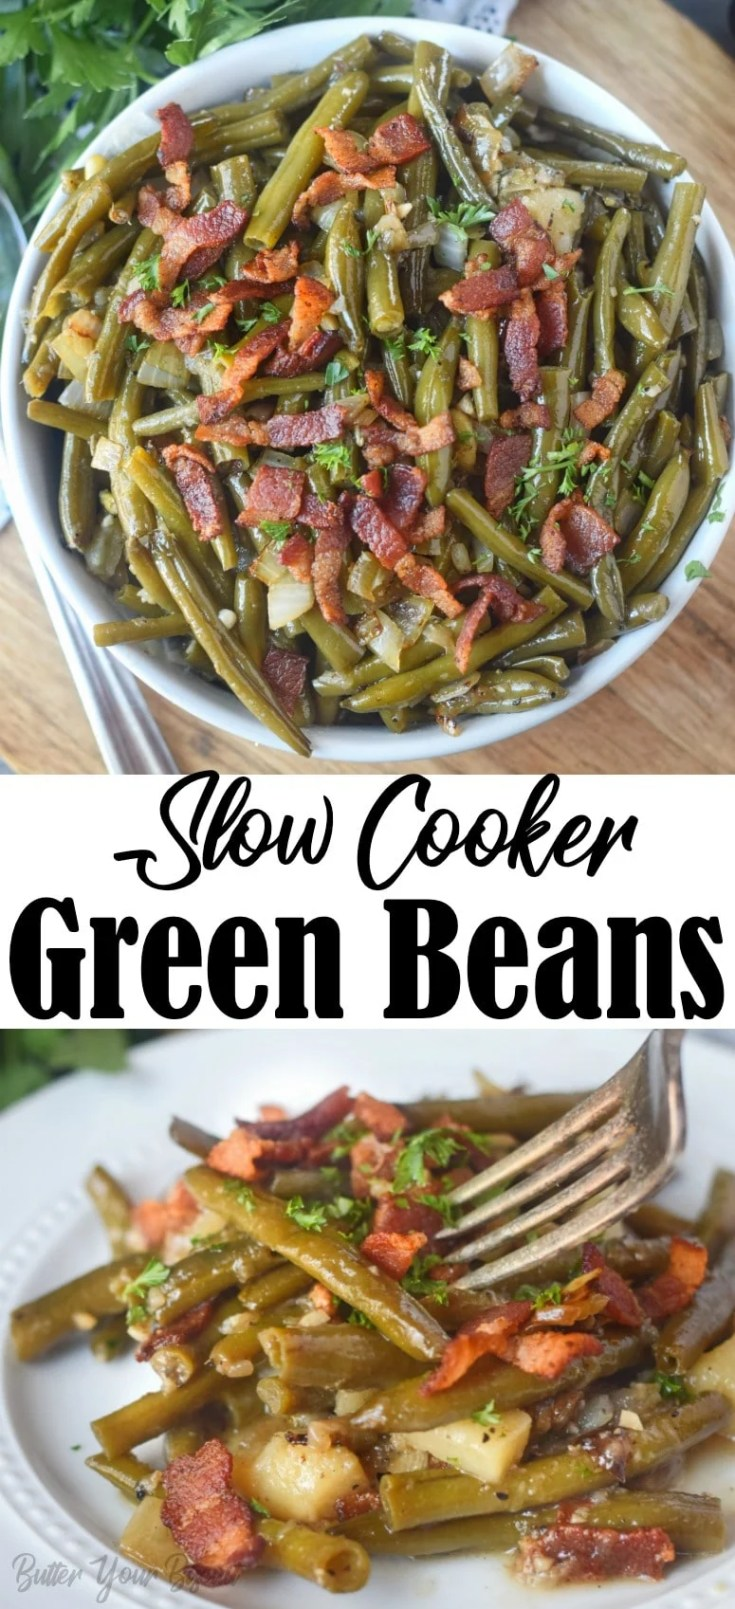 Slow cooker green beans are super easy to make and packed with tons of flavor. The perfect side dish to your family dinner.